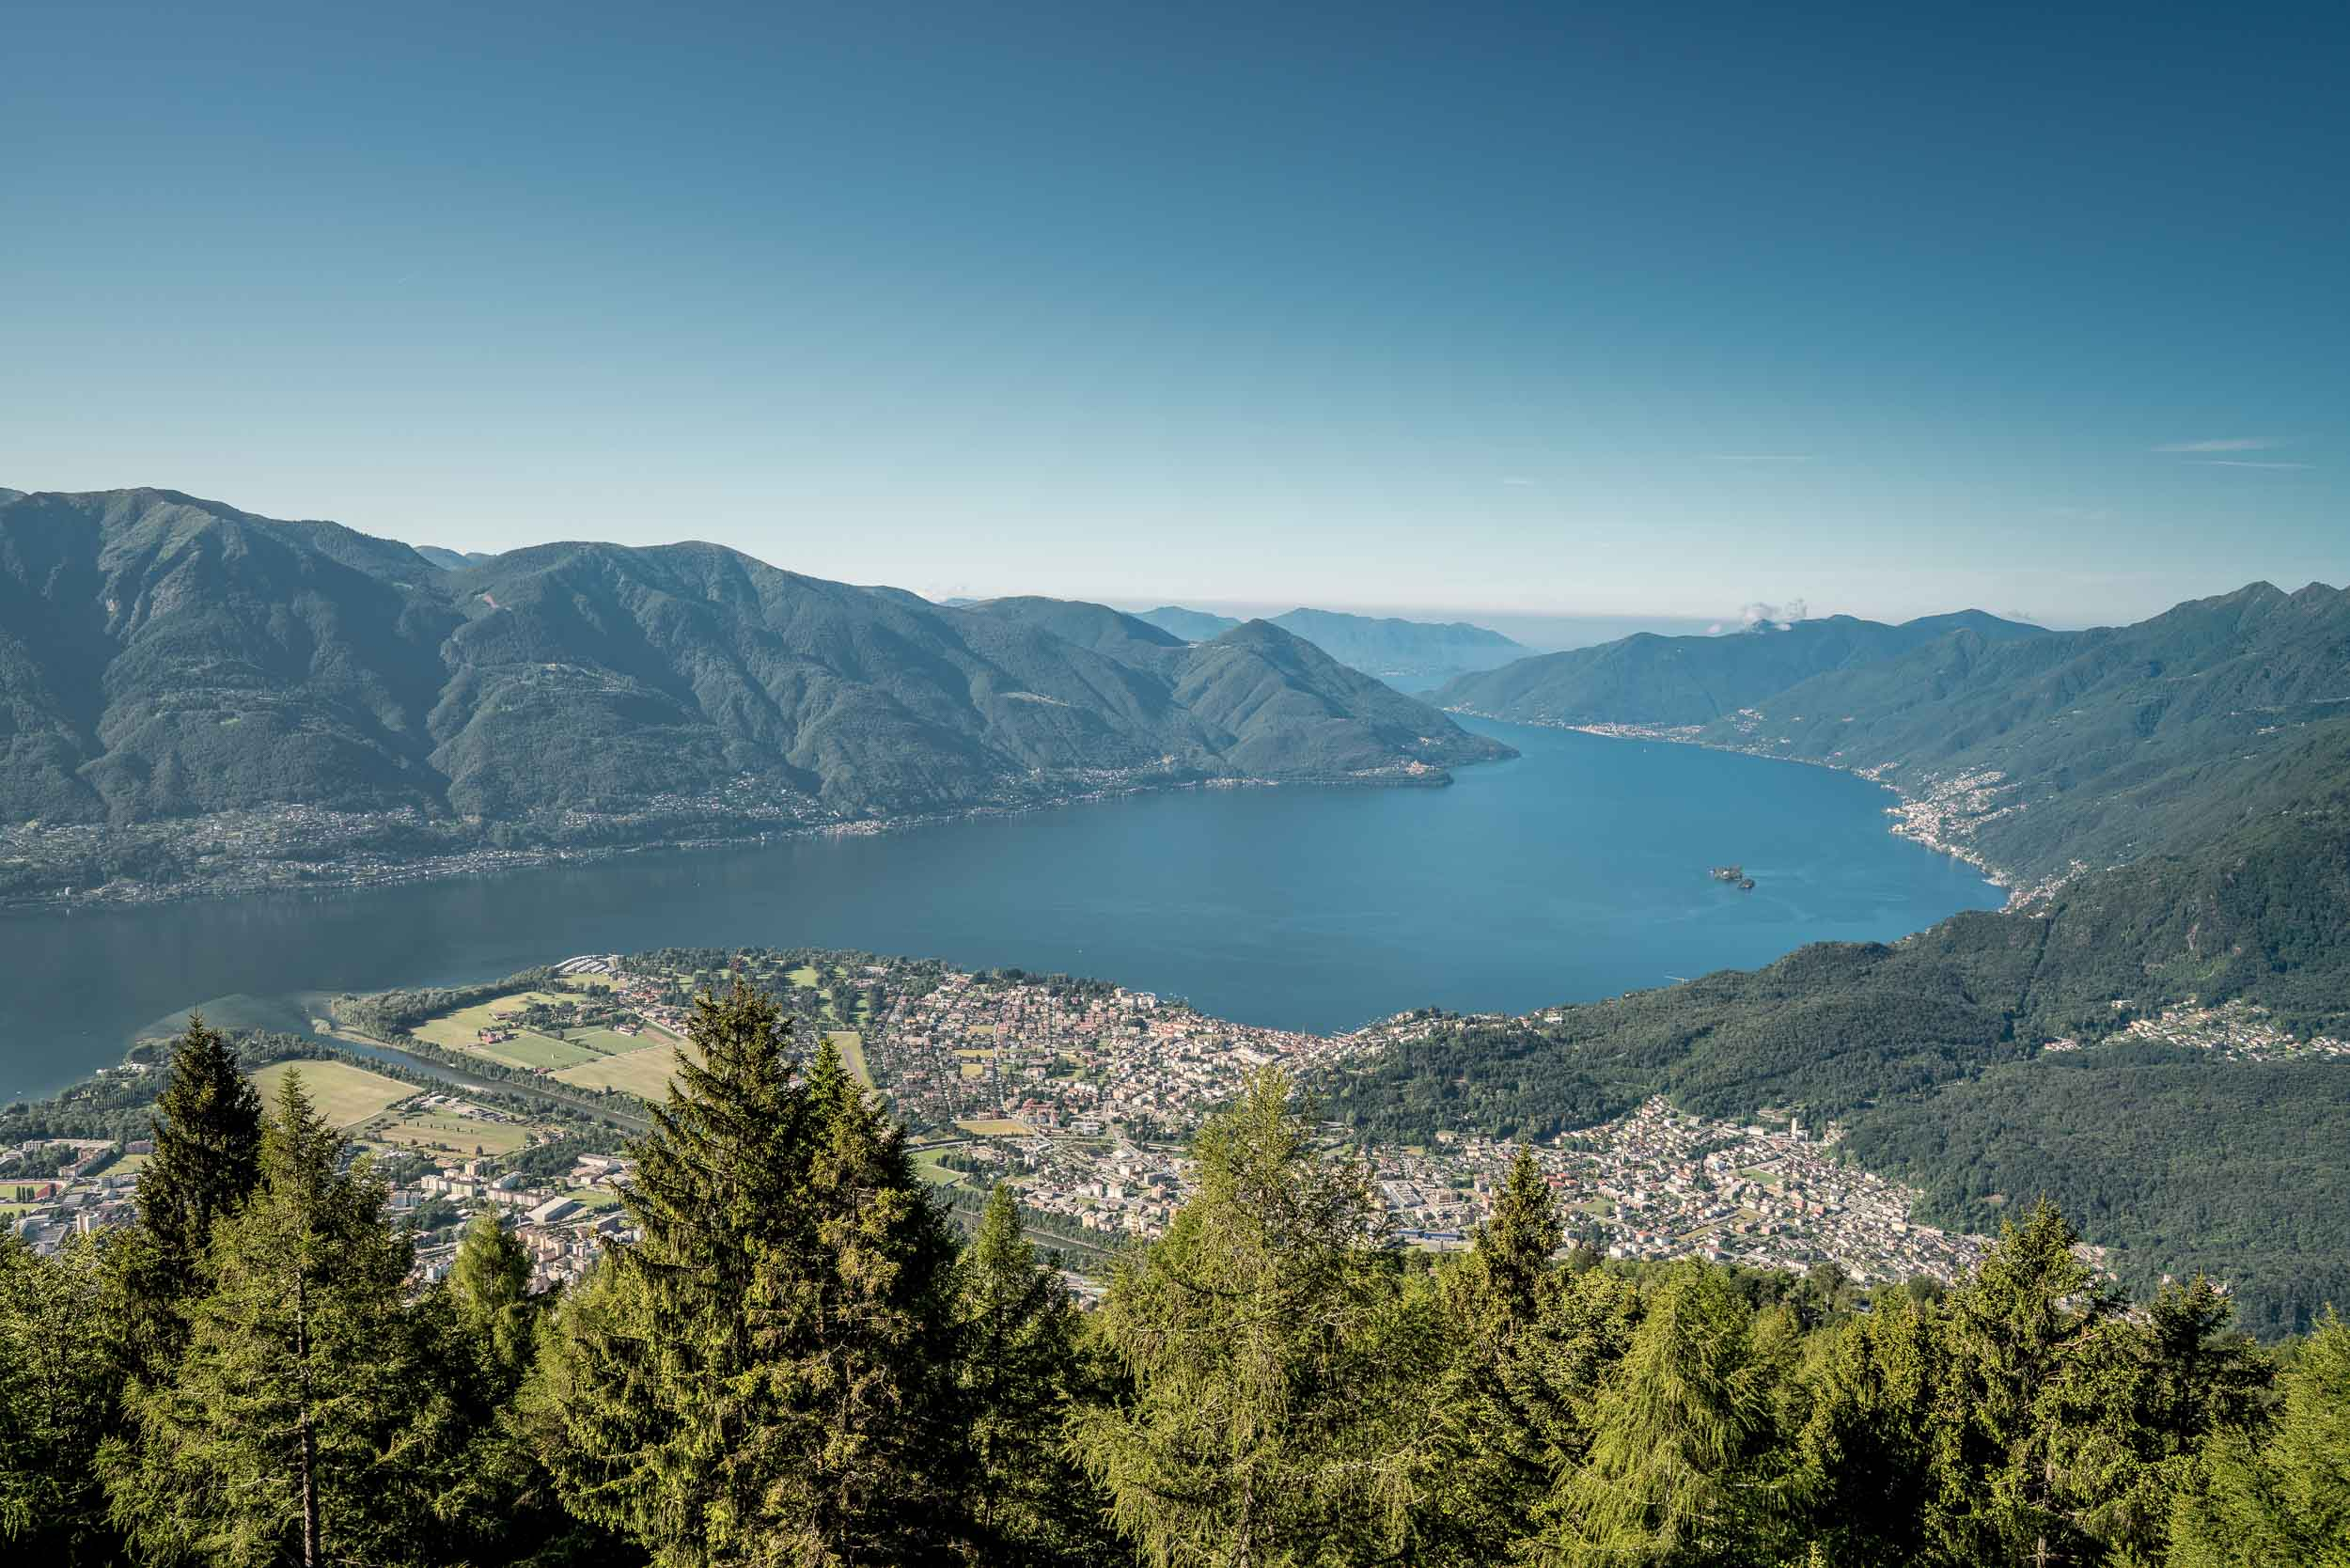 View from the Cardada observation deck of Lake Maggiore Ascona and the Brissago Islands. Copyright by: Switzerland Tourism